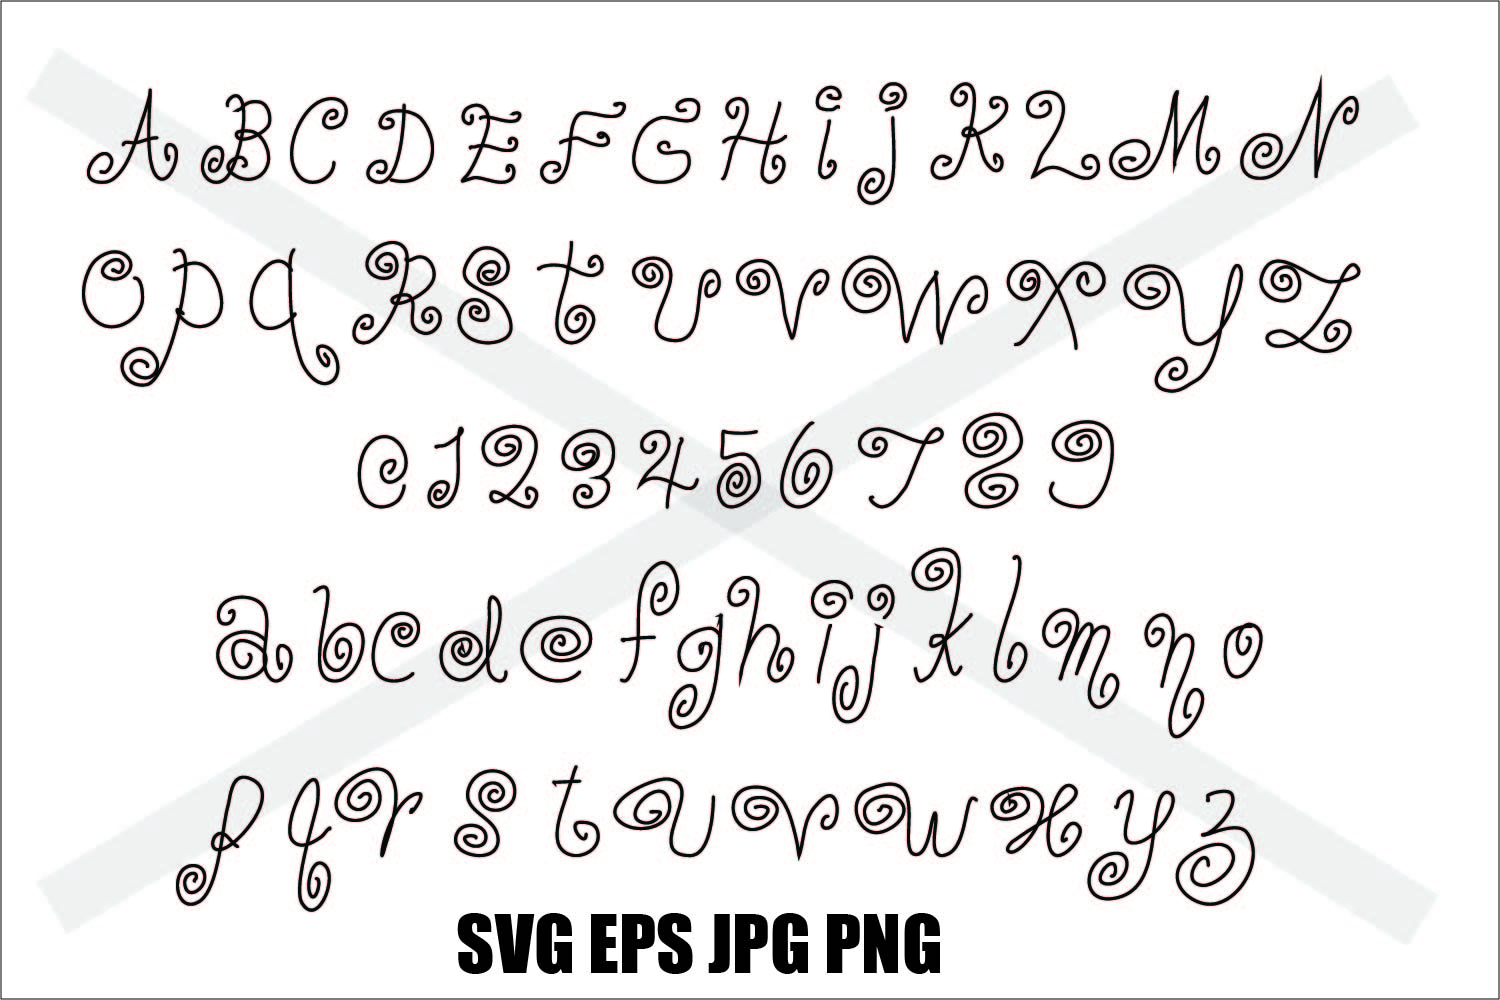 Swirling Font A to Z 0 to 9 - SVG EPS JPG PNG example image 1